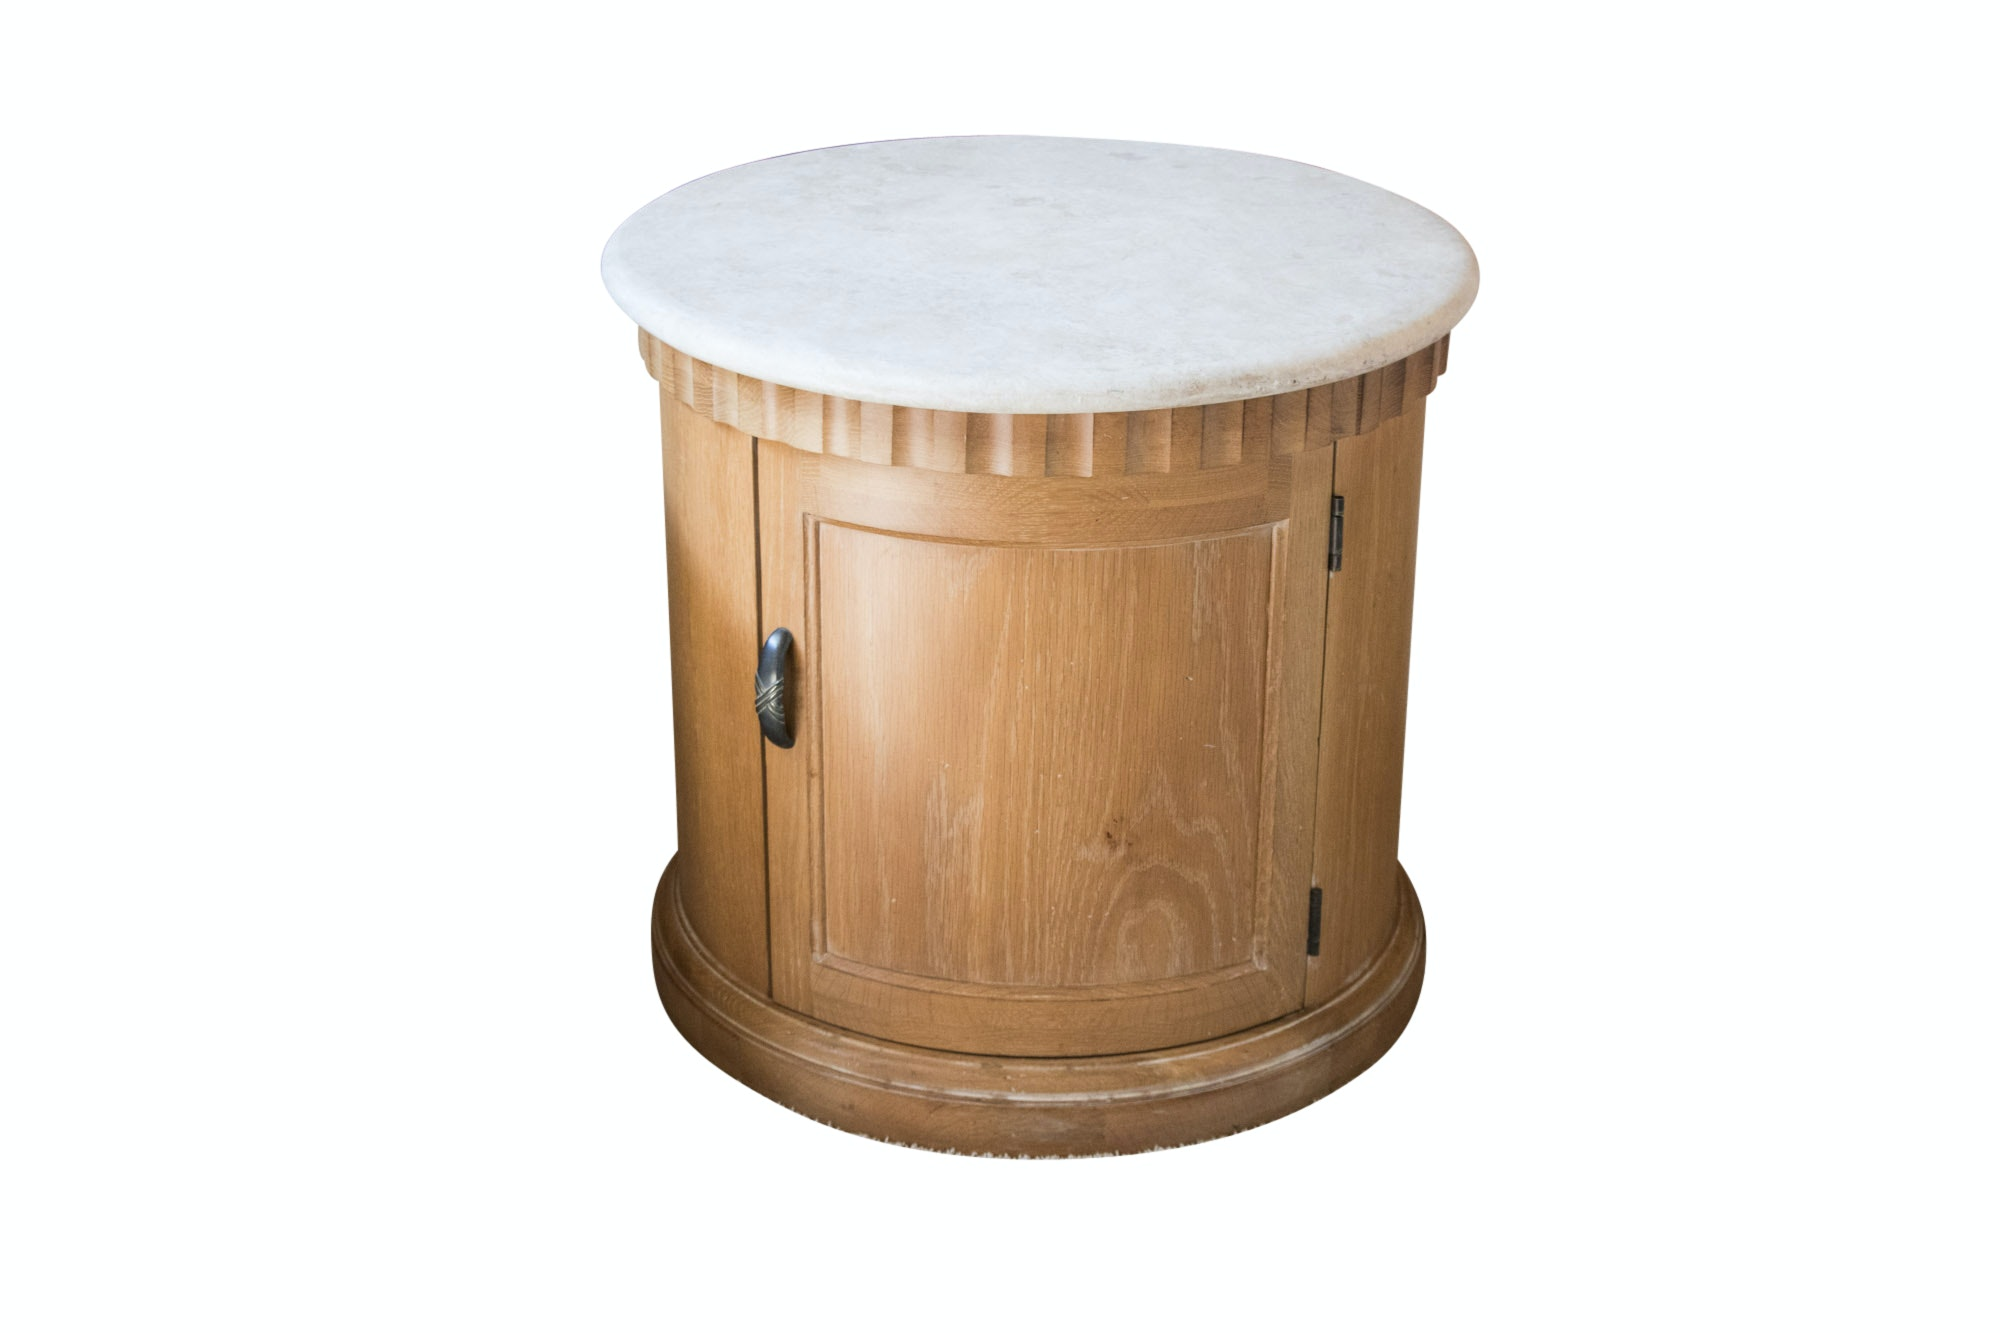 Contemporary Oak and Stone Round Table